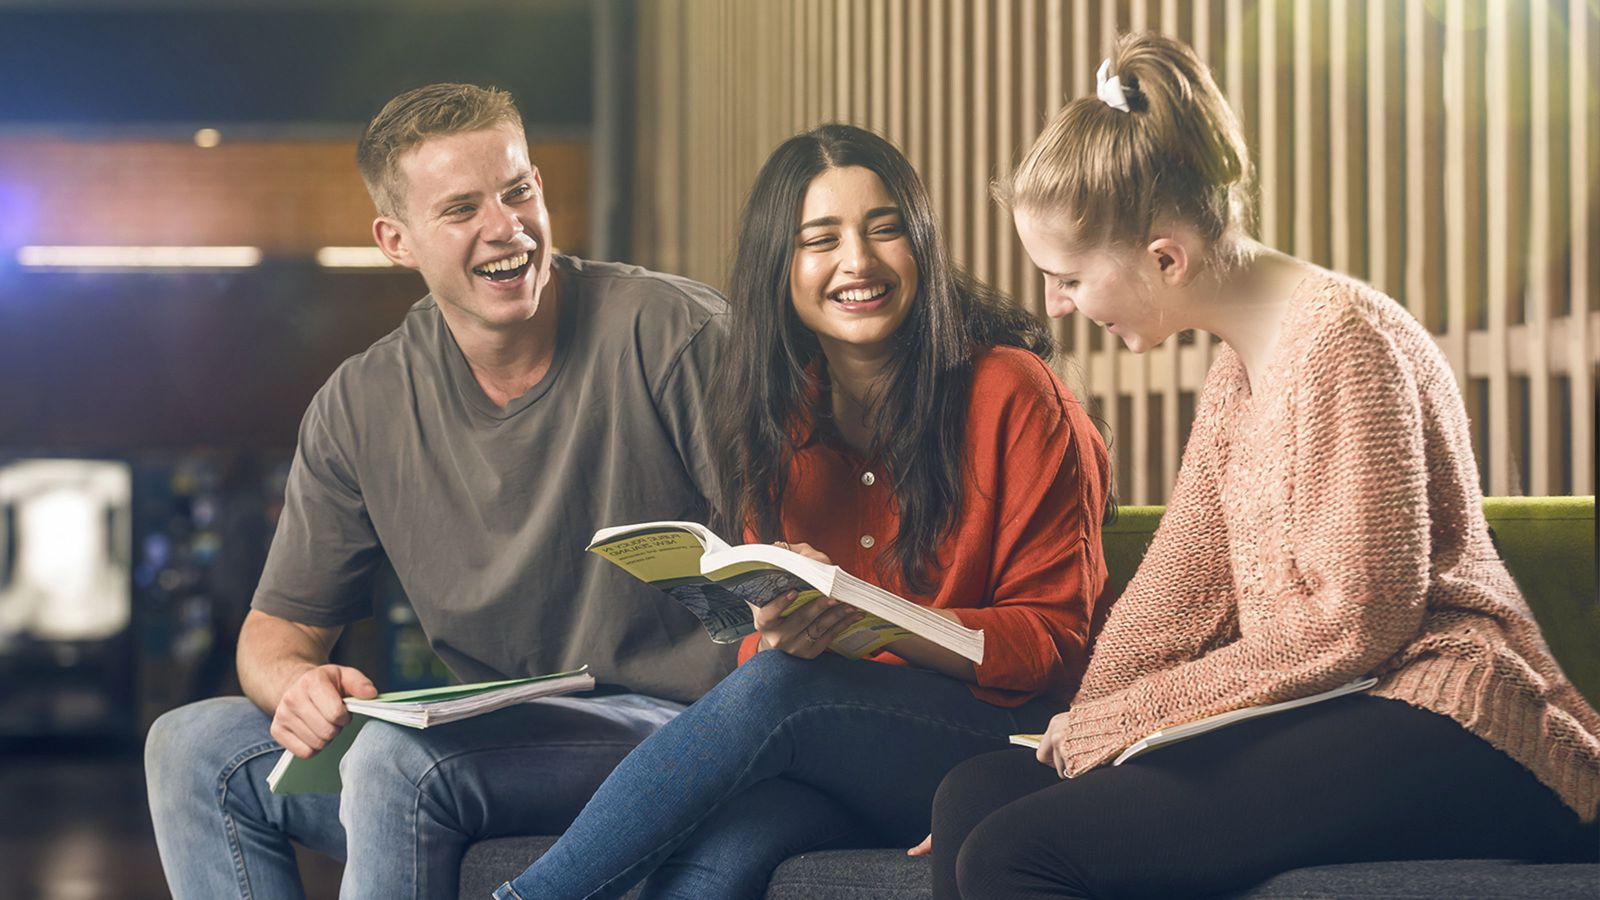 Three students sit on a couch and smile while studying a text book.